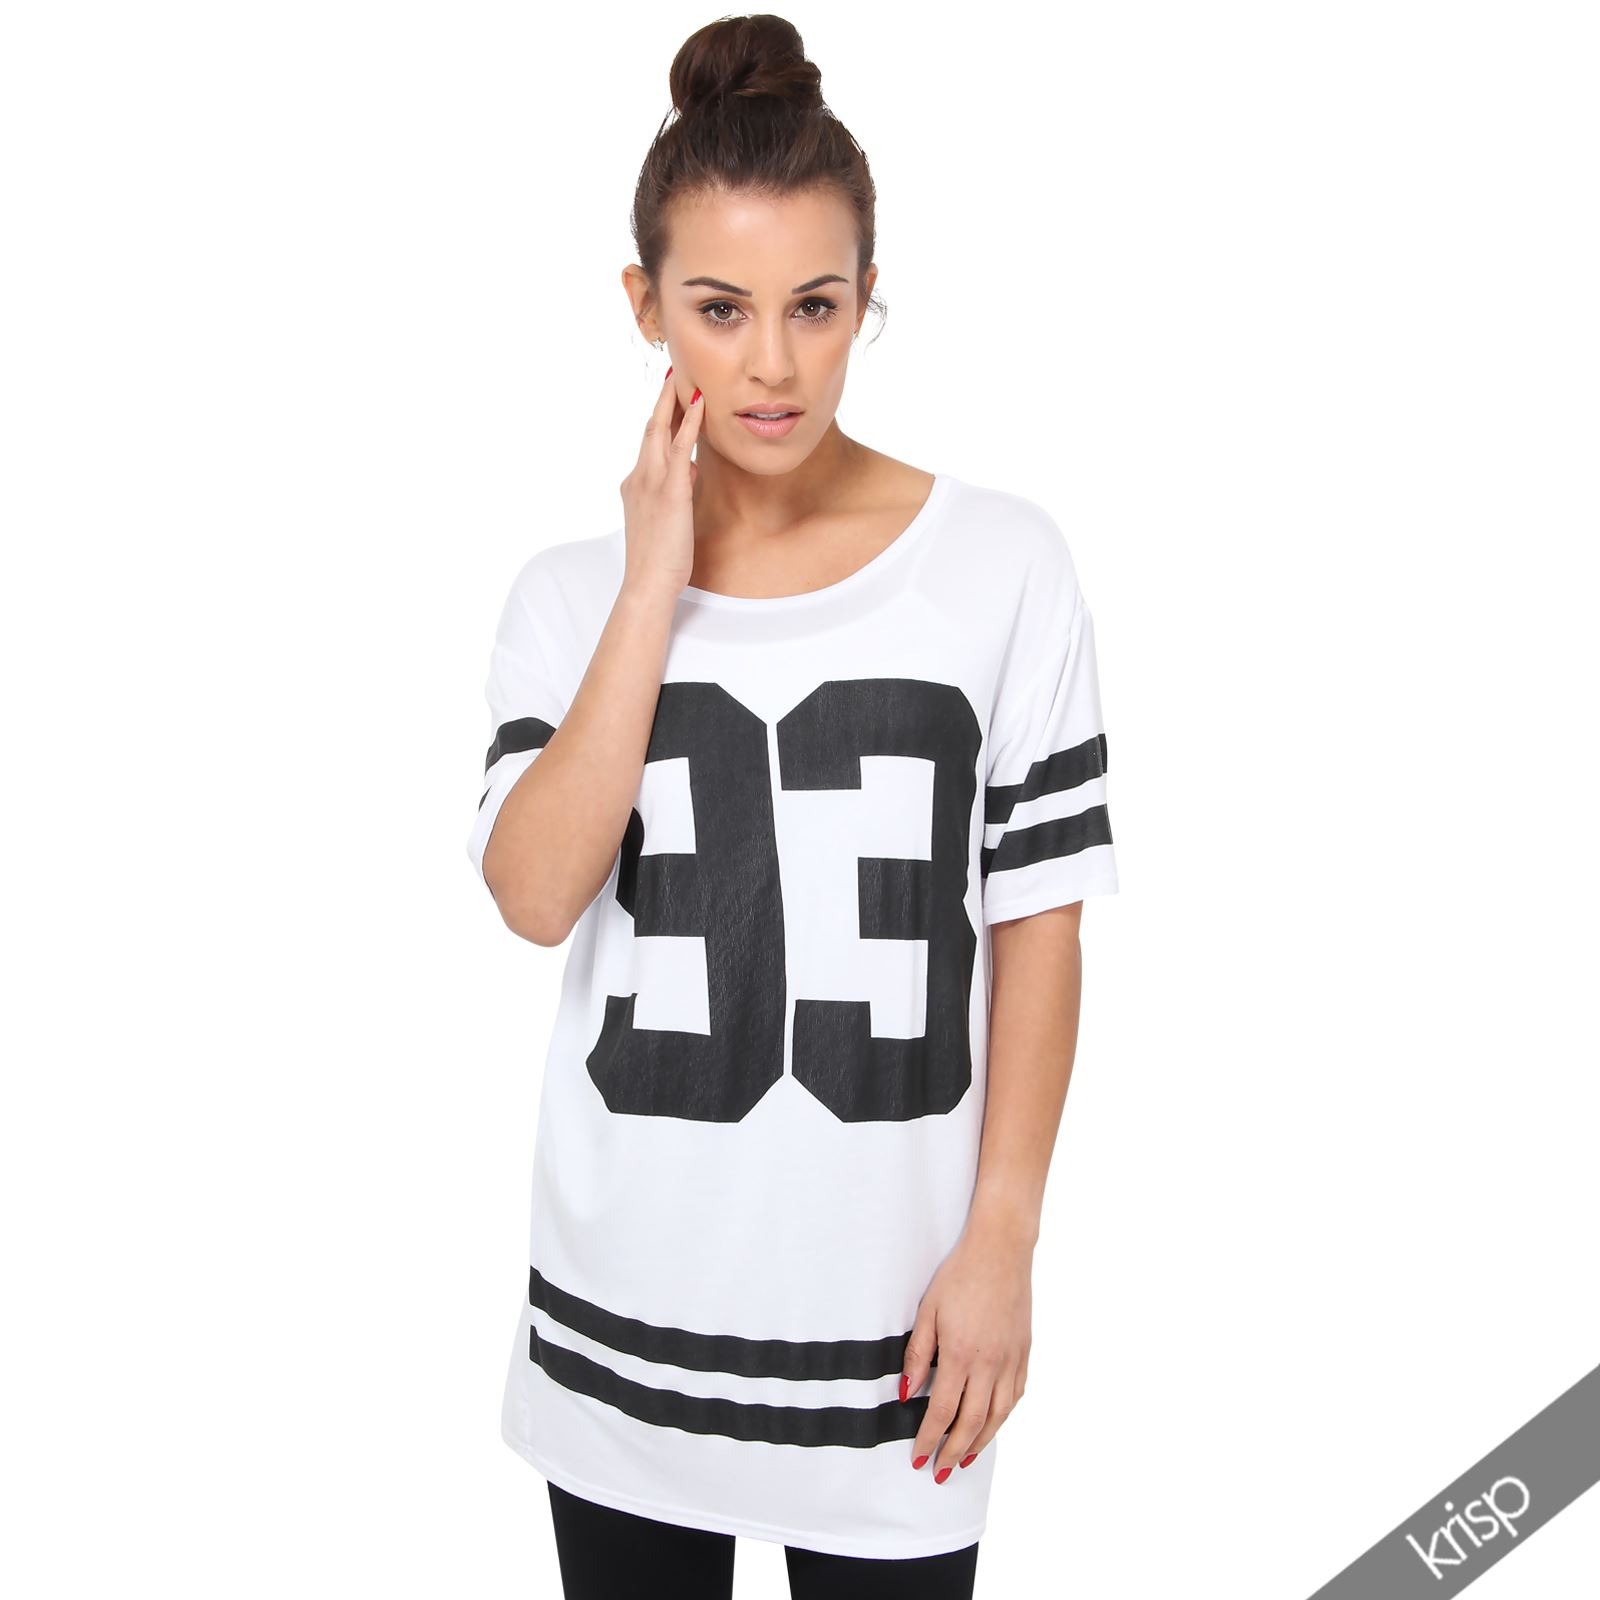 damen t shirt nummer 93 oversize baseball top american college top plus size ebay. Black Bedroom Furniture Sets. Home Design Ideas